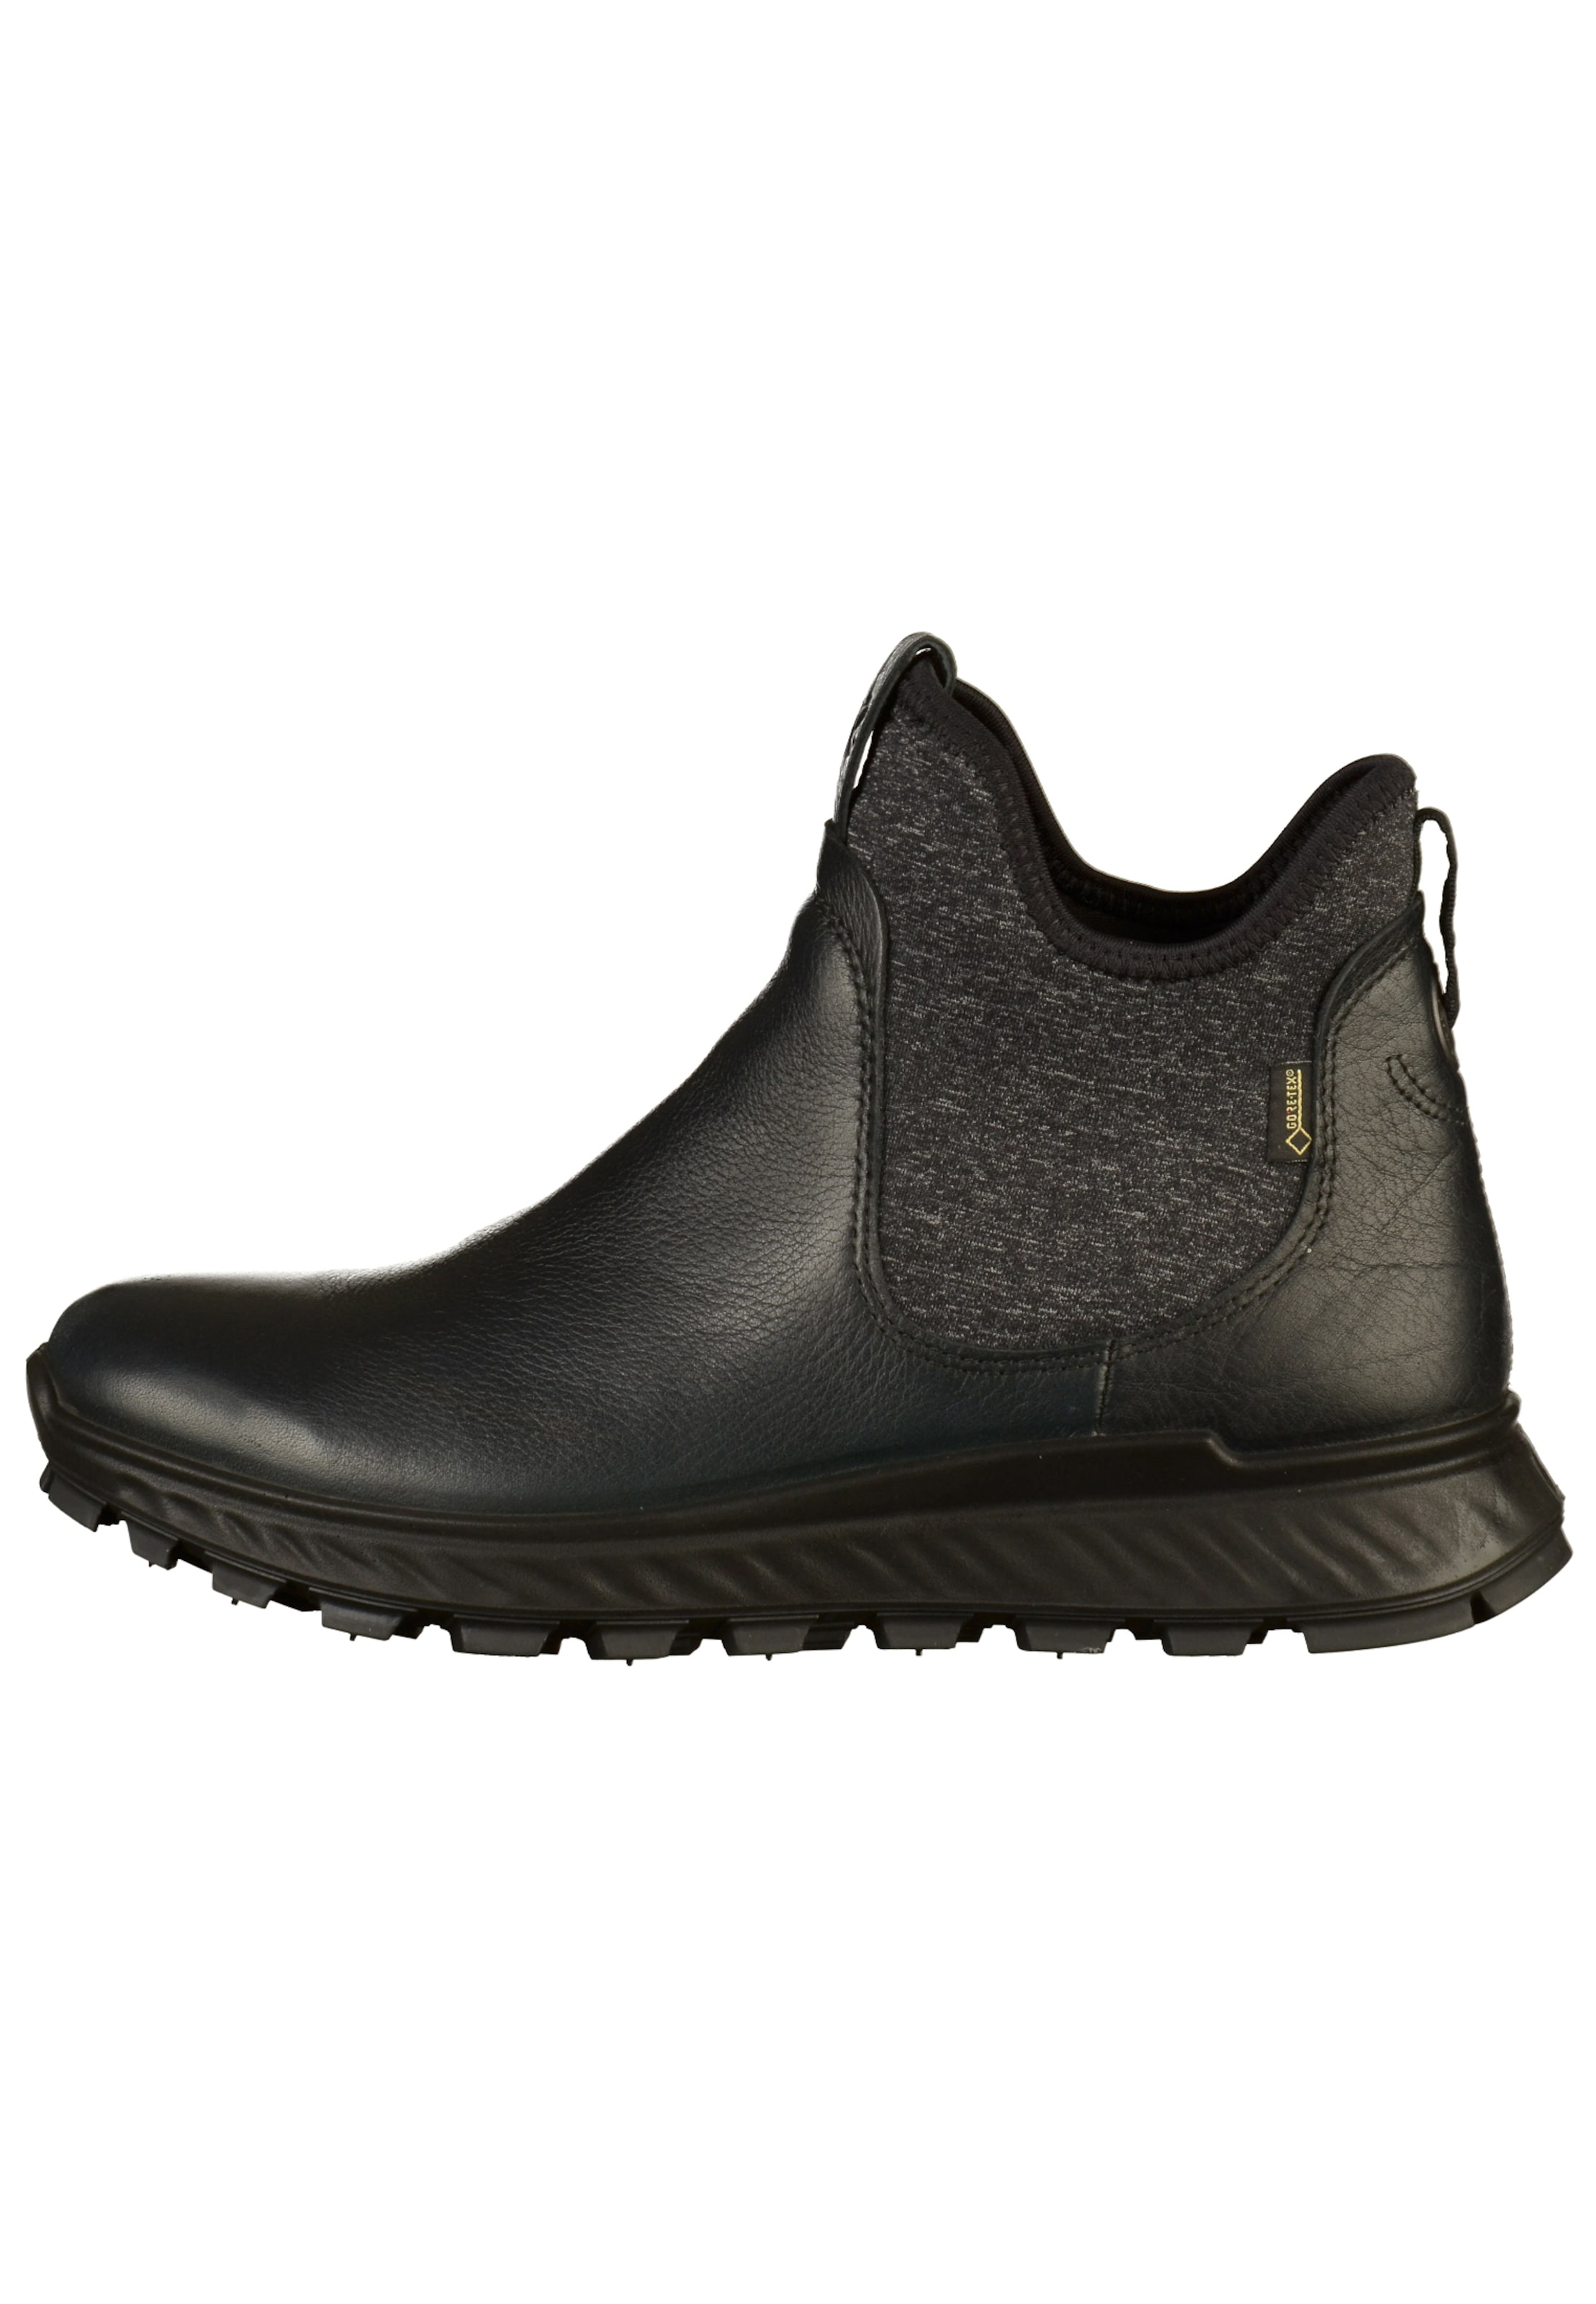 FoncéNoir Ecco En Ecco Bottines En Ecco Bottines Gris Gris FoncéNoir KFJ1lTc